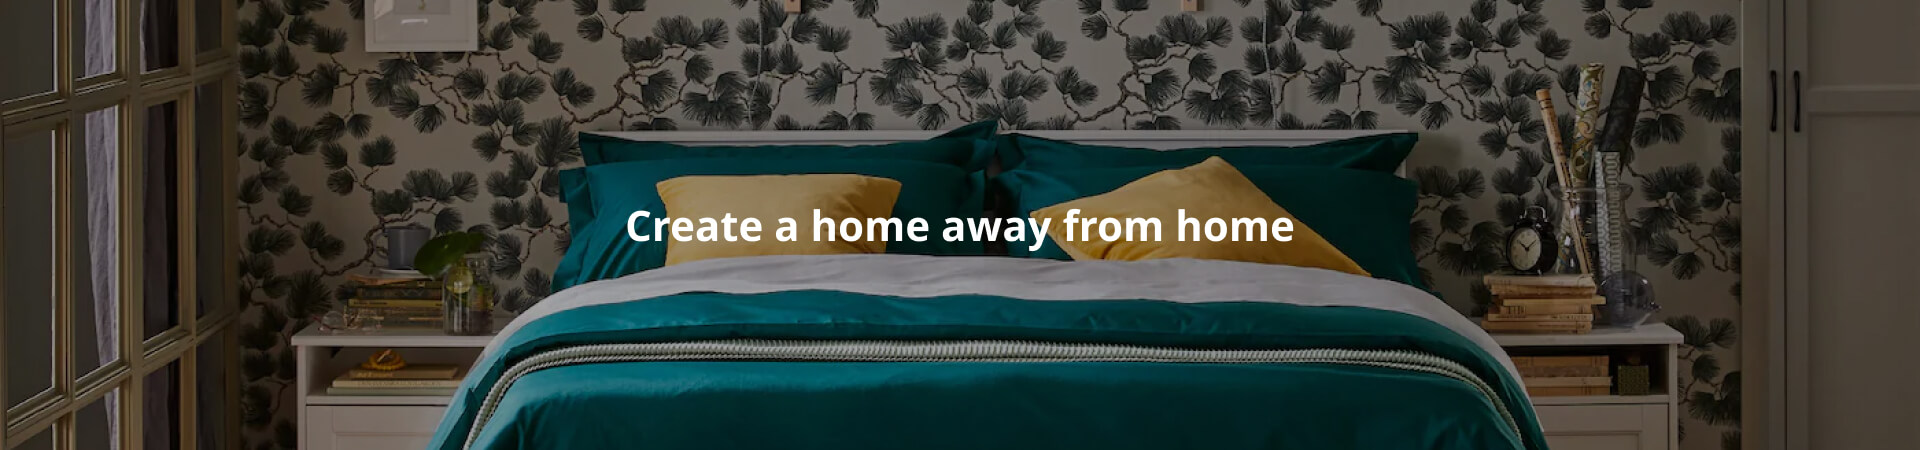 IKEA Business Inspirations - Home Banner